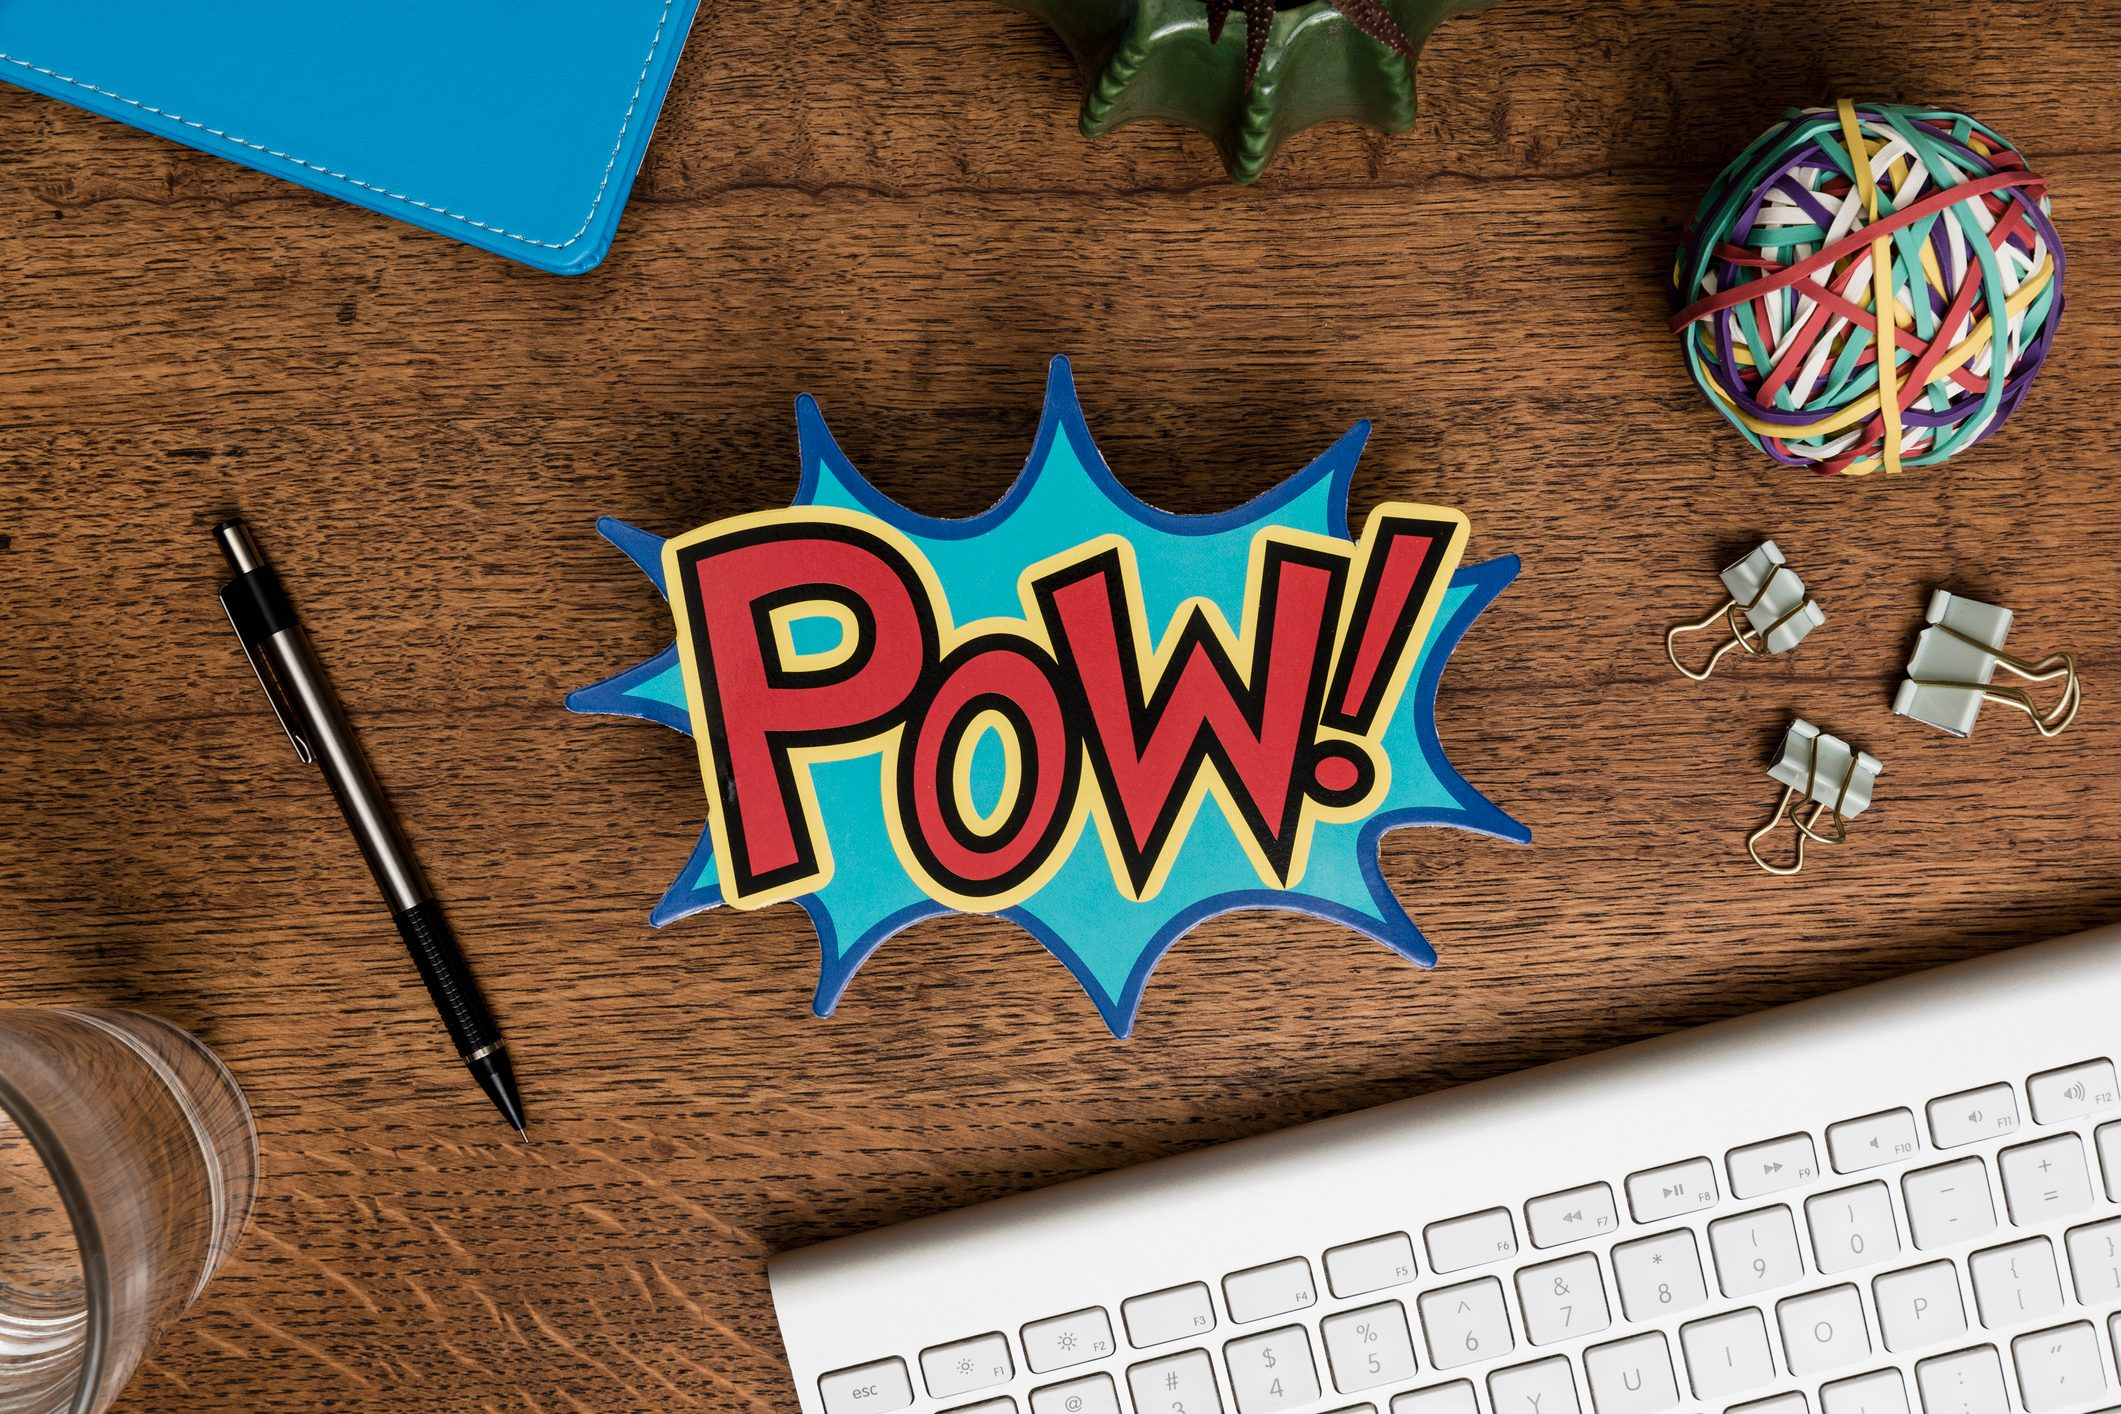 View from above POW sign on wooden desk